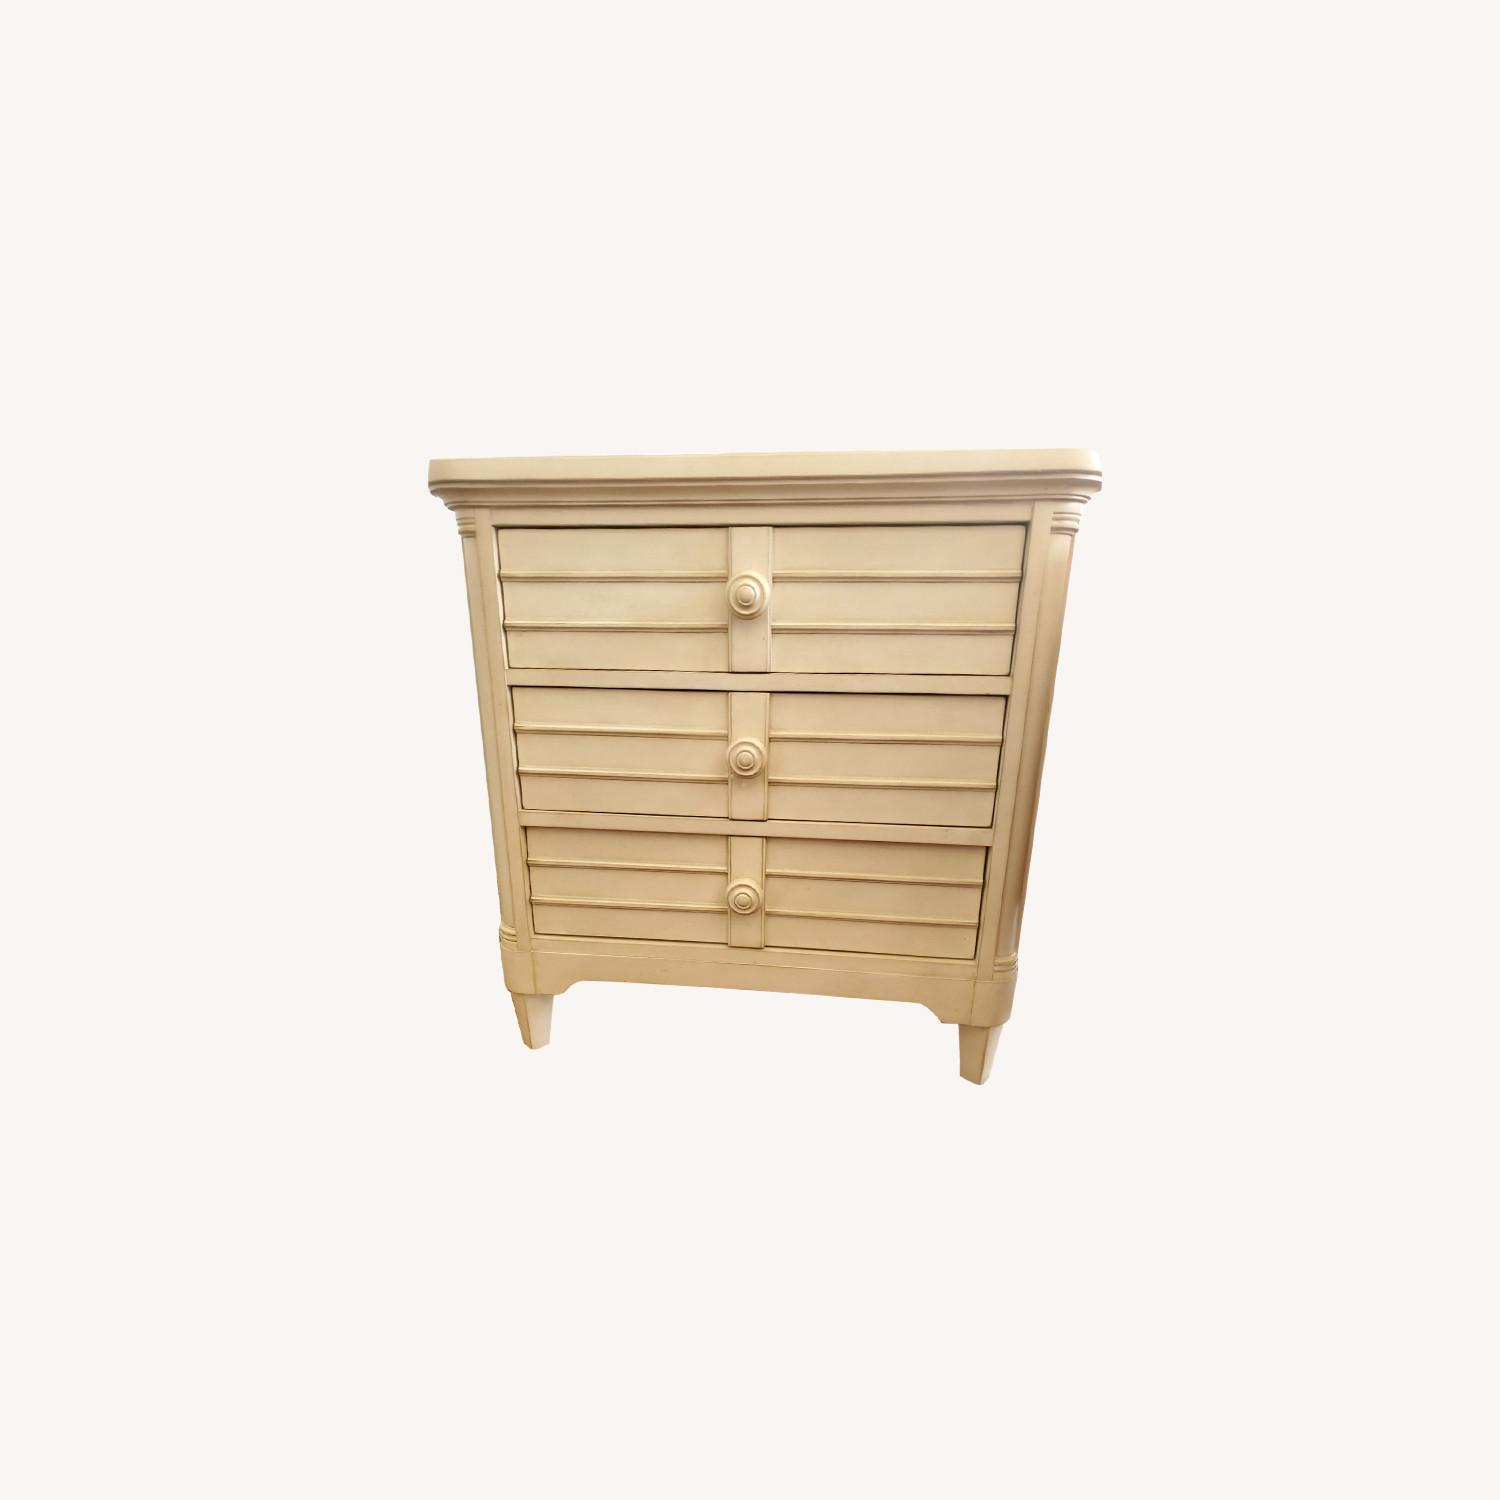 Stanley Sommerset Ivory 3 Drawer Nightstands - image-0